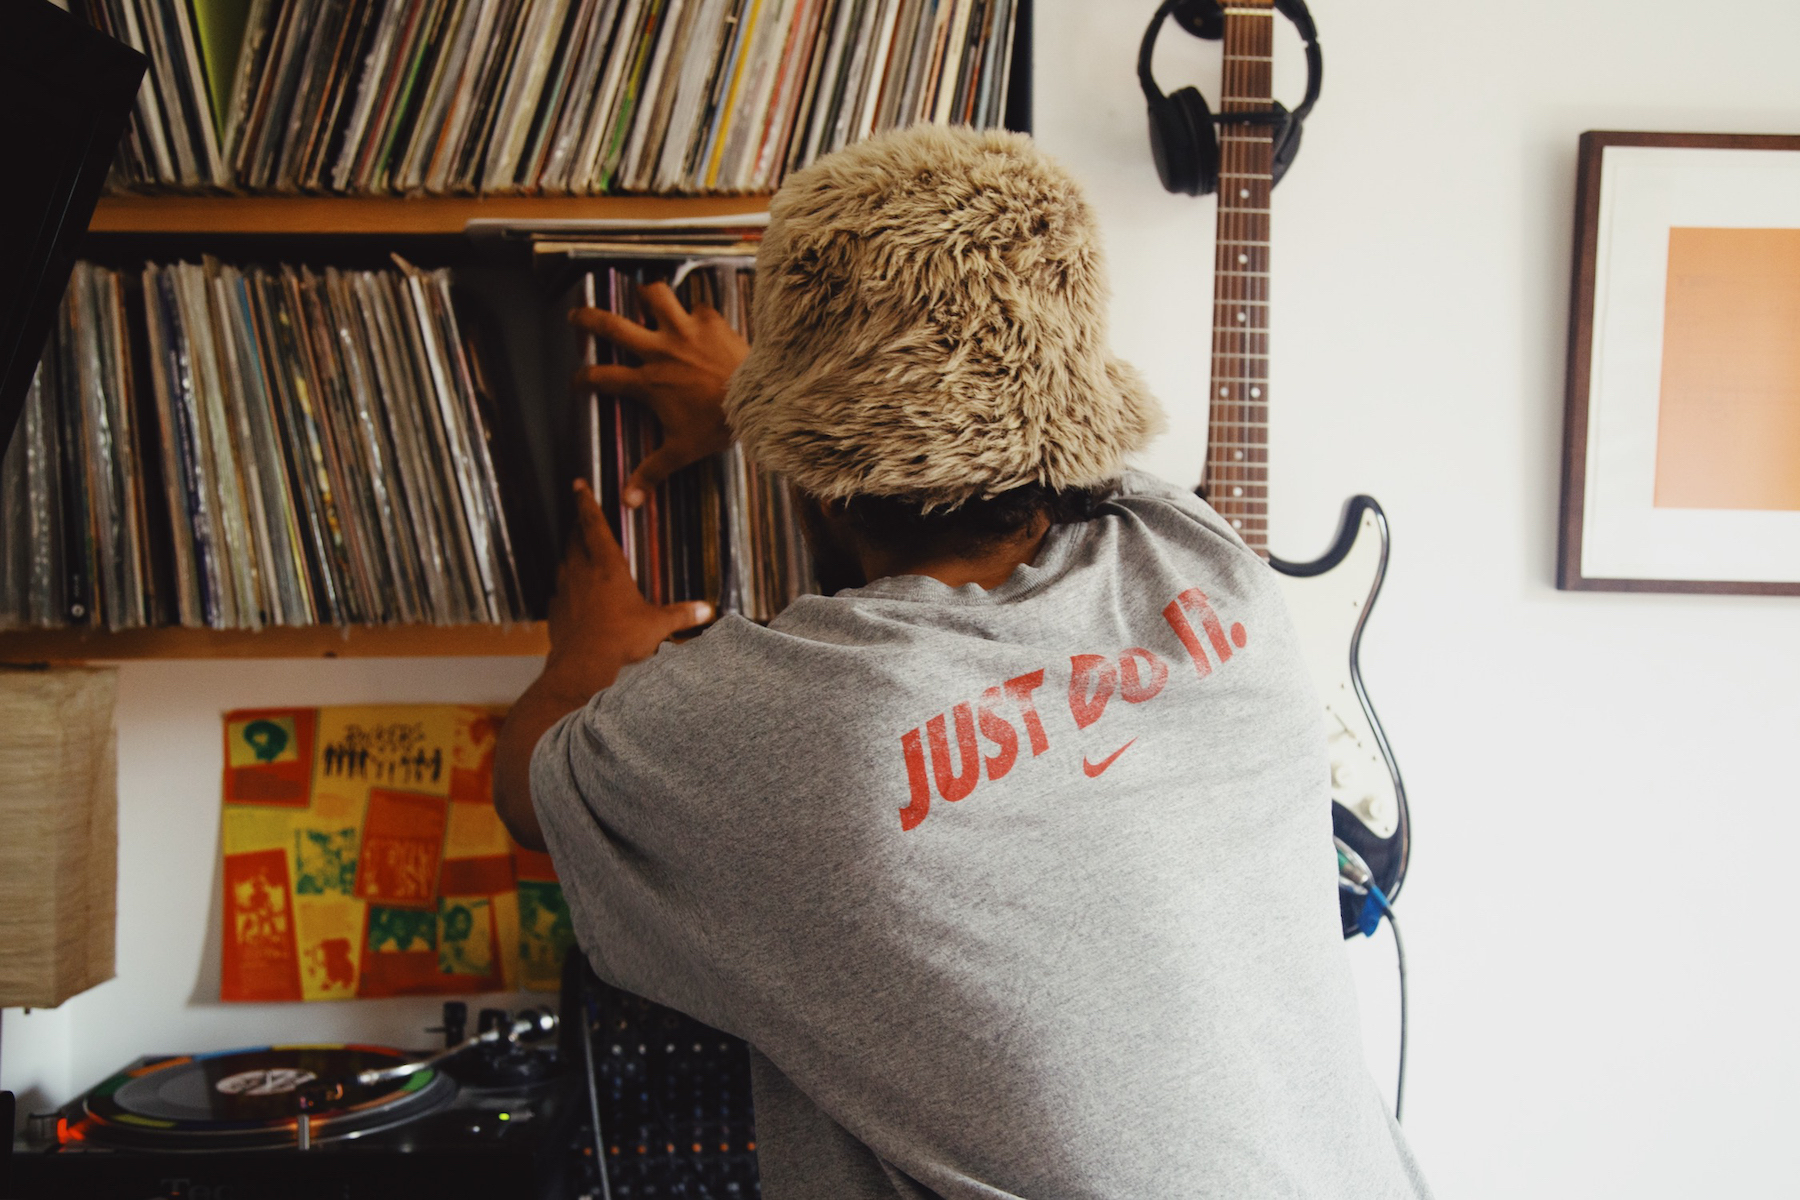 Crate Diggers: Inside Wu-Lu's record collection